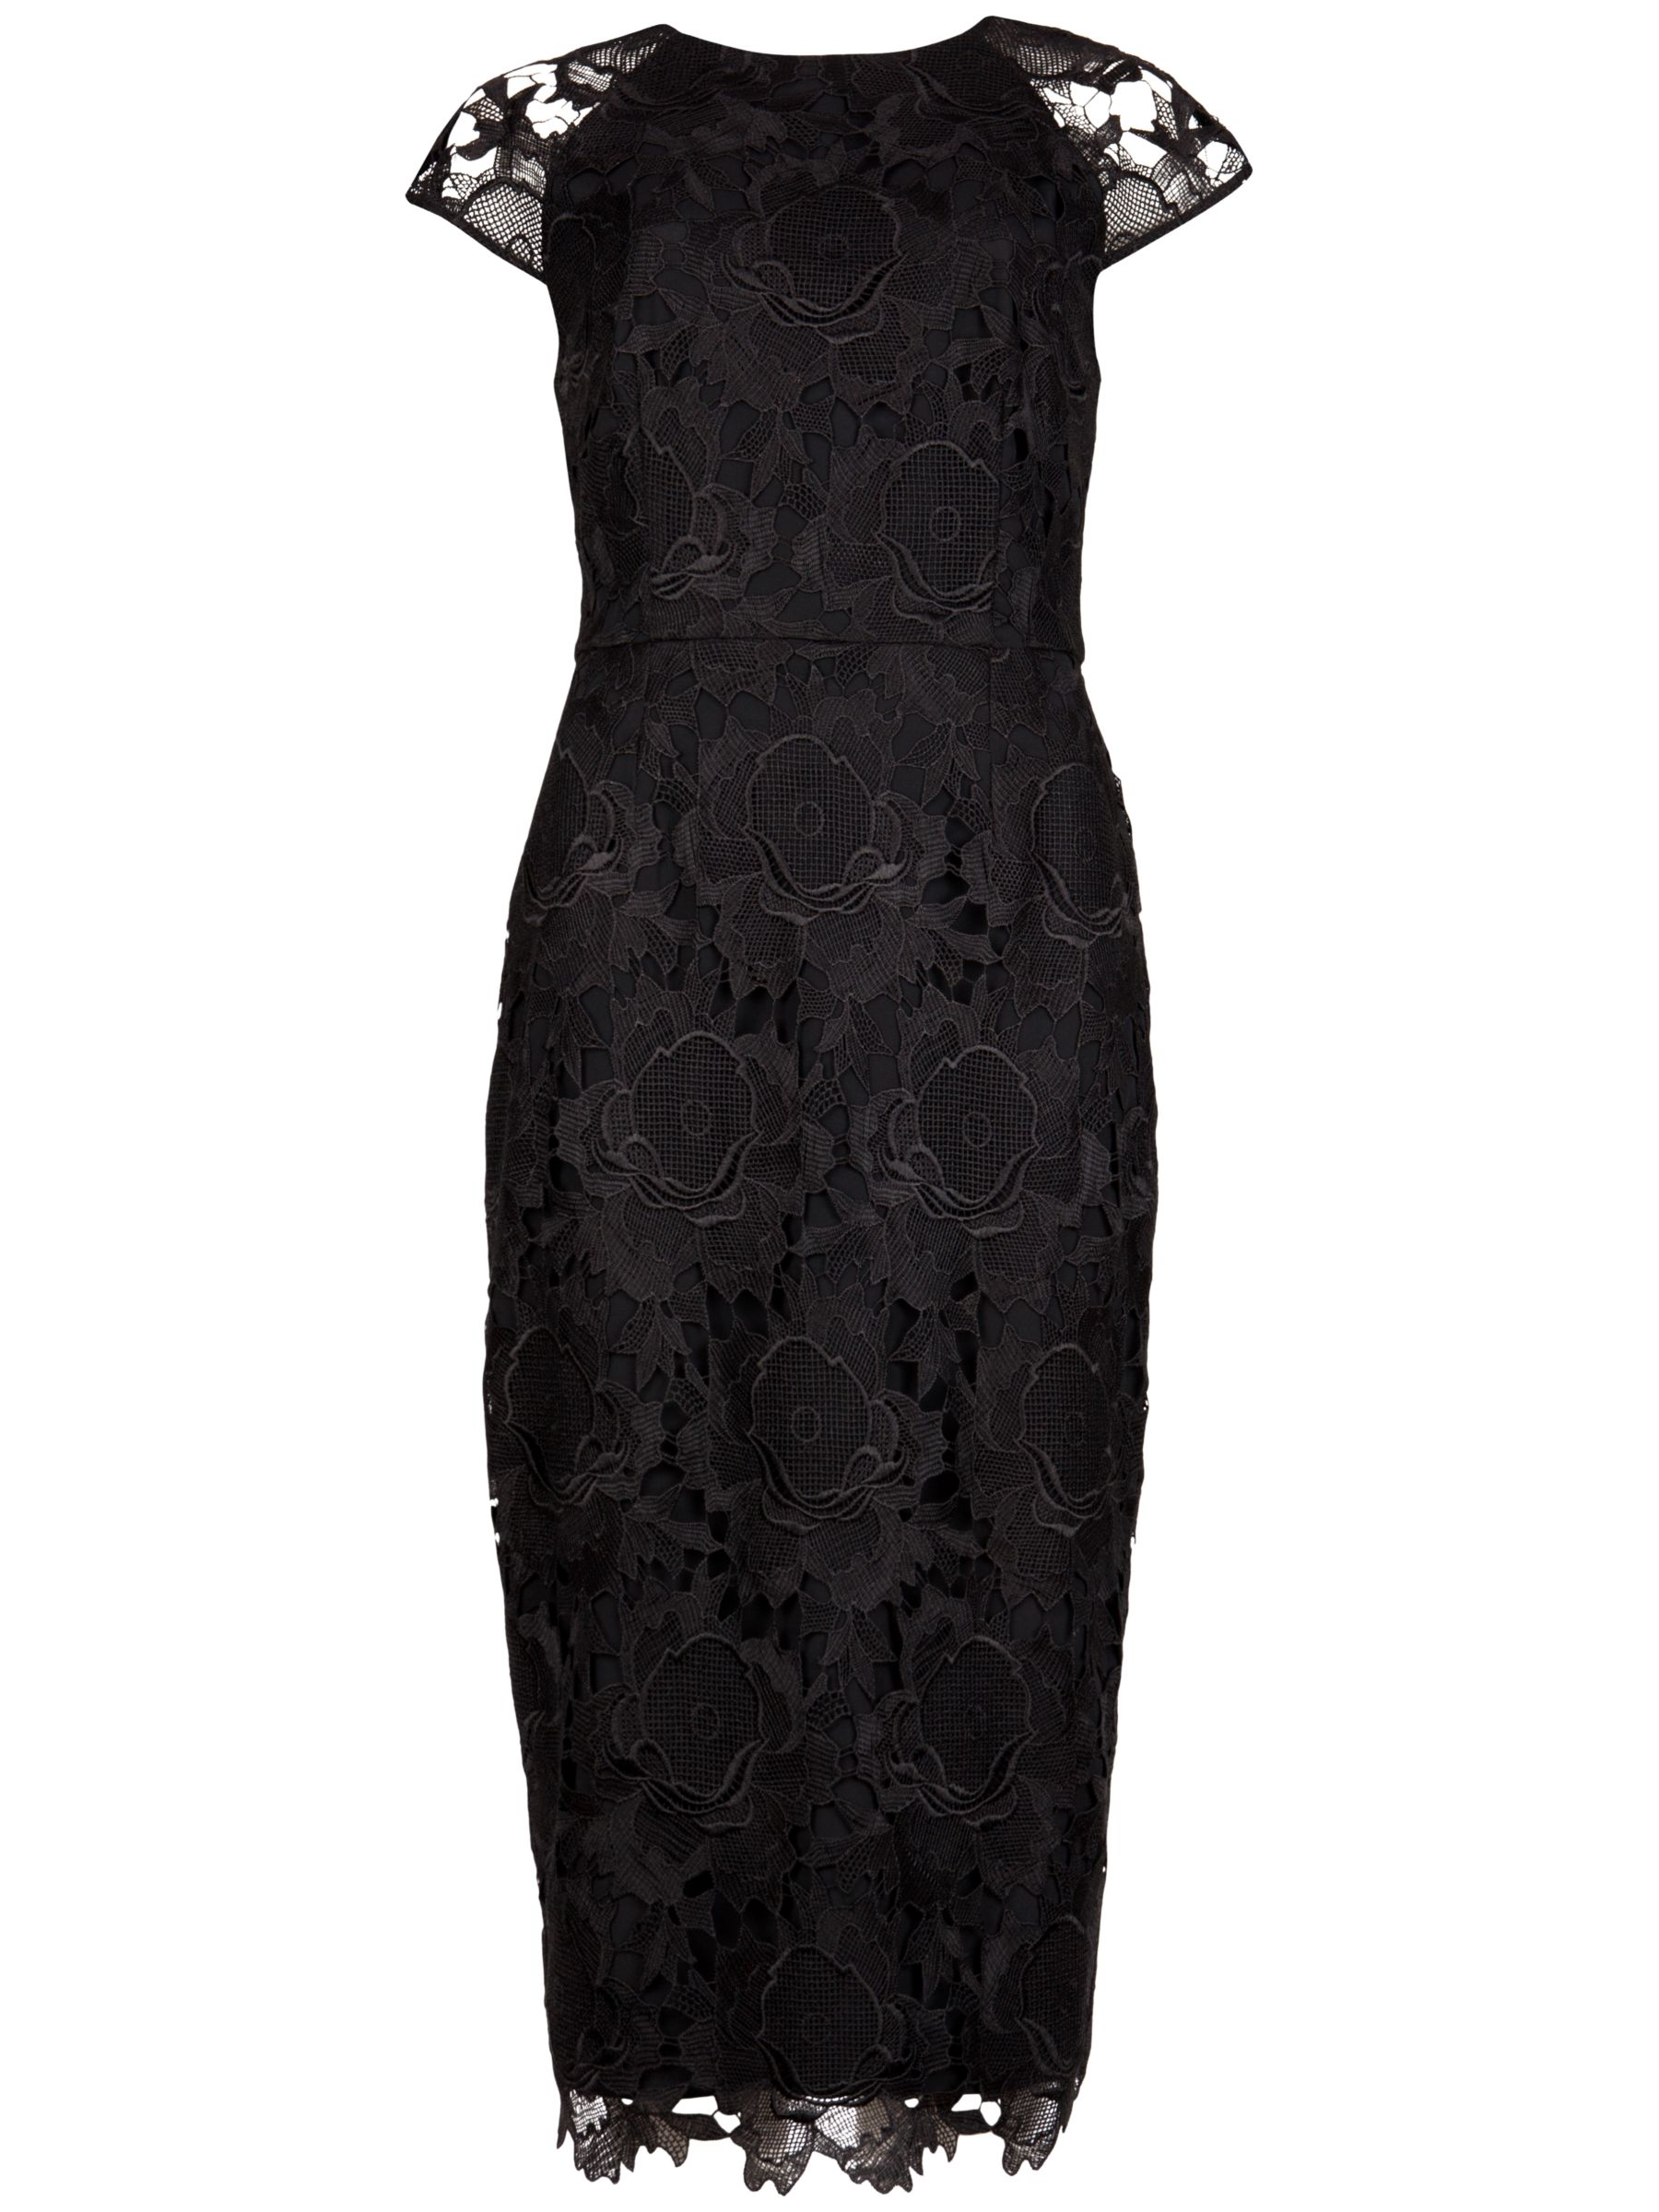 ted baker lace fitted dress black, ted, baker, lace, fitted, dress, black, ted baker, 10|8|6|16|14|12, women, party outfits, lace dress, womens dresses, party dresses, edition magazine, little black dress, fashion magazine, womenswear, men, brands l-z, 1737148